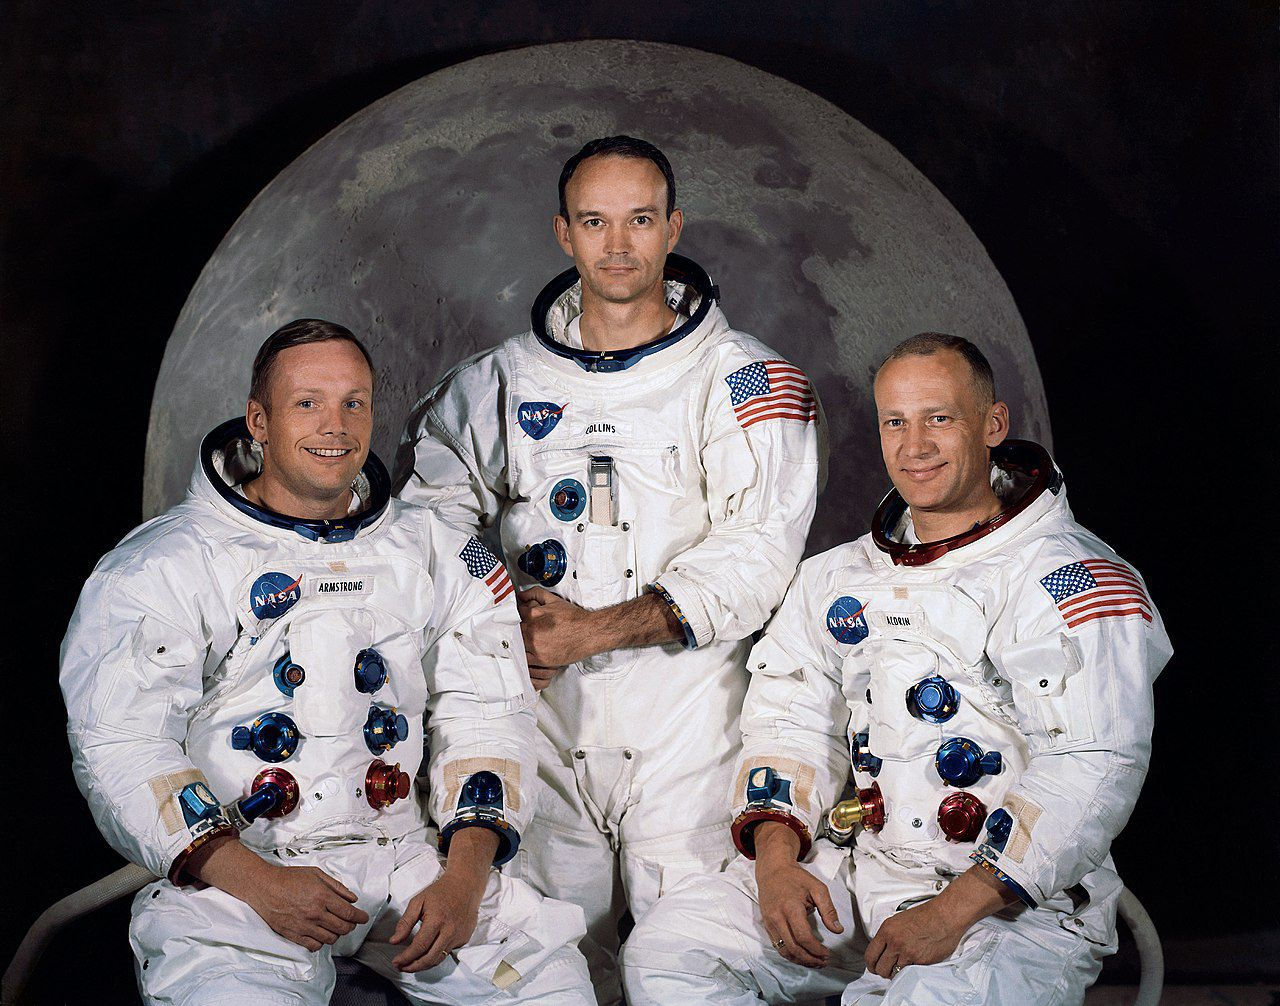 50 Years Anniversary of the Apollo 11 Moon Landing